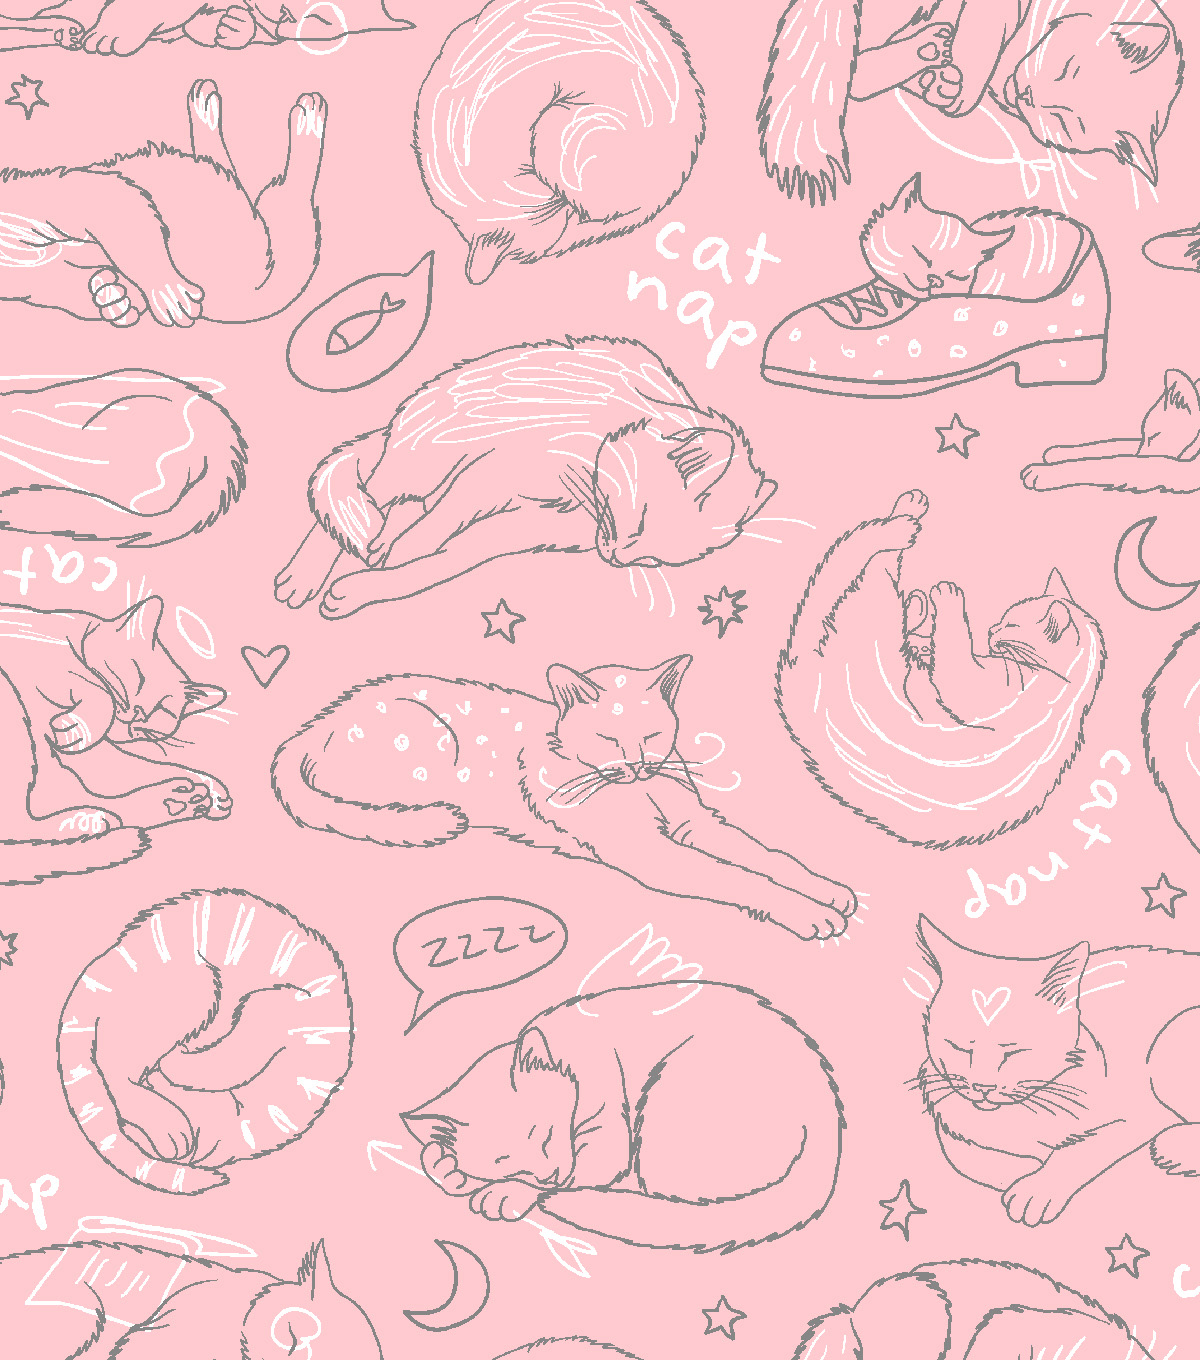 Blizzard Fleece Fabric -Purrr Sketched Cat